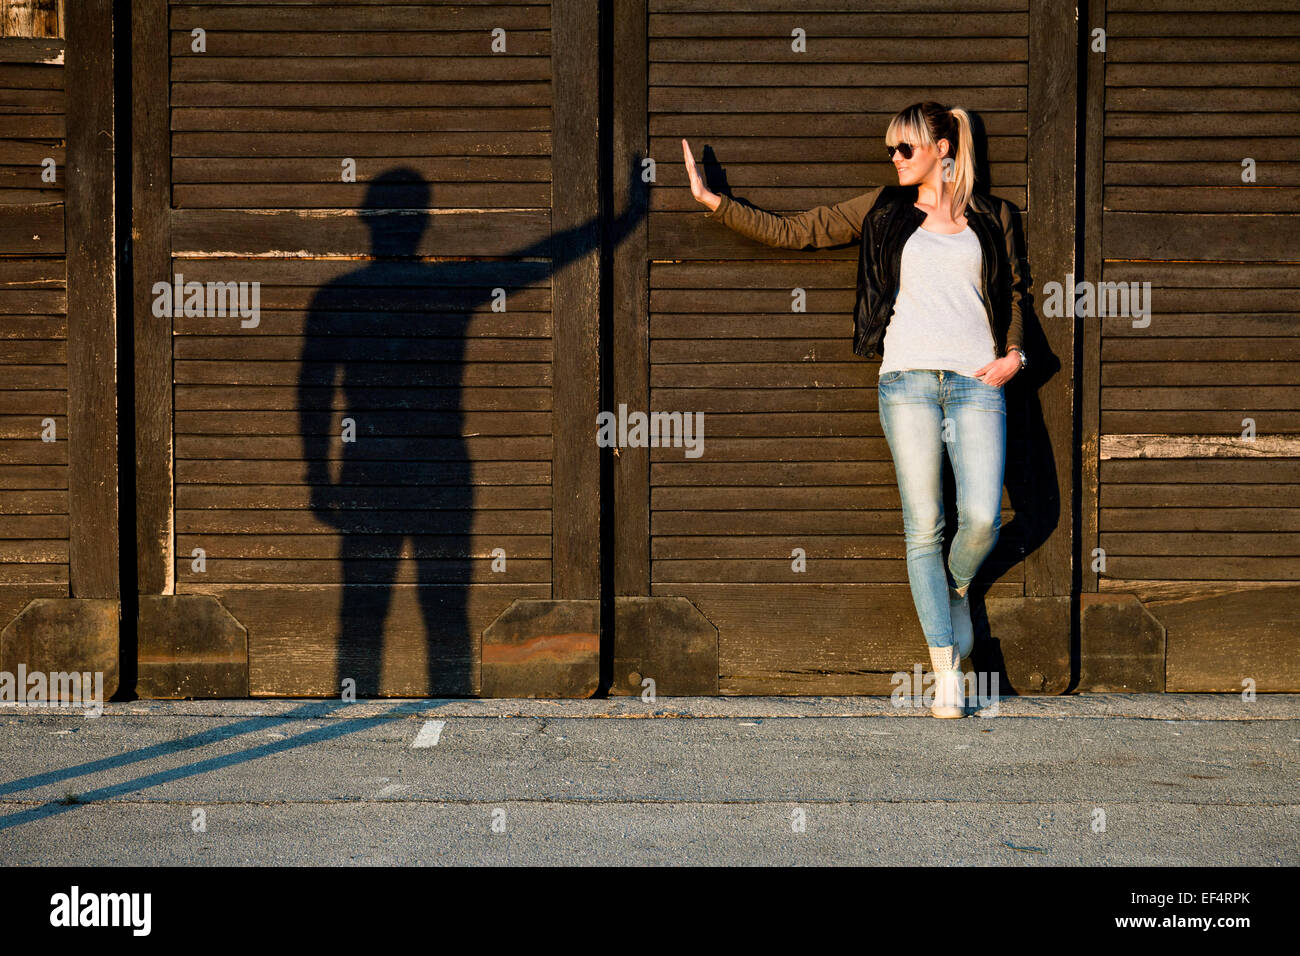 Young woman gesturing with silhouette of young man against wooden wall - Stock Image